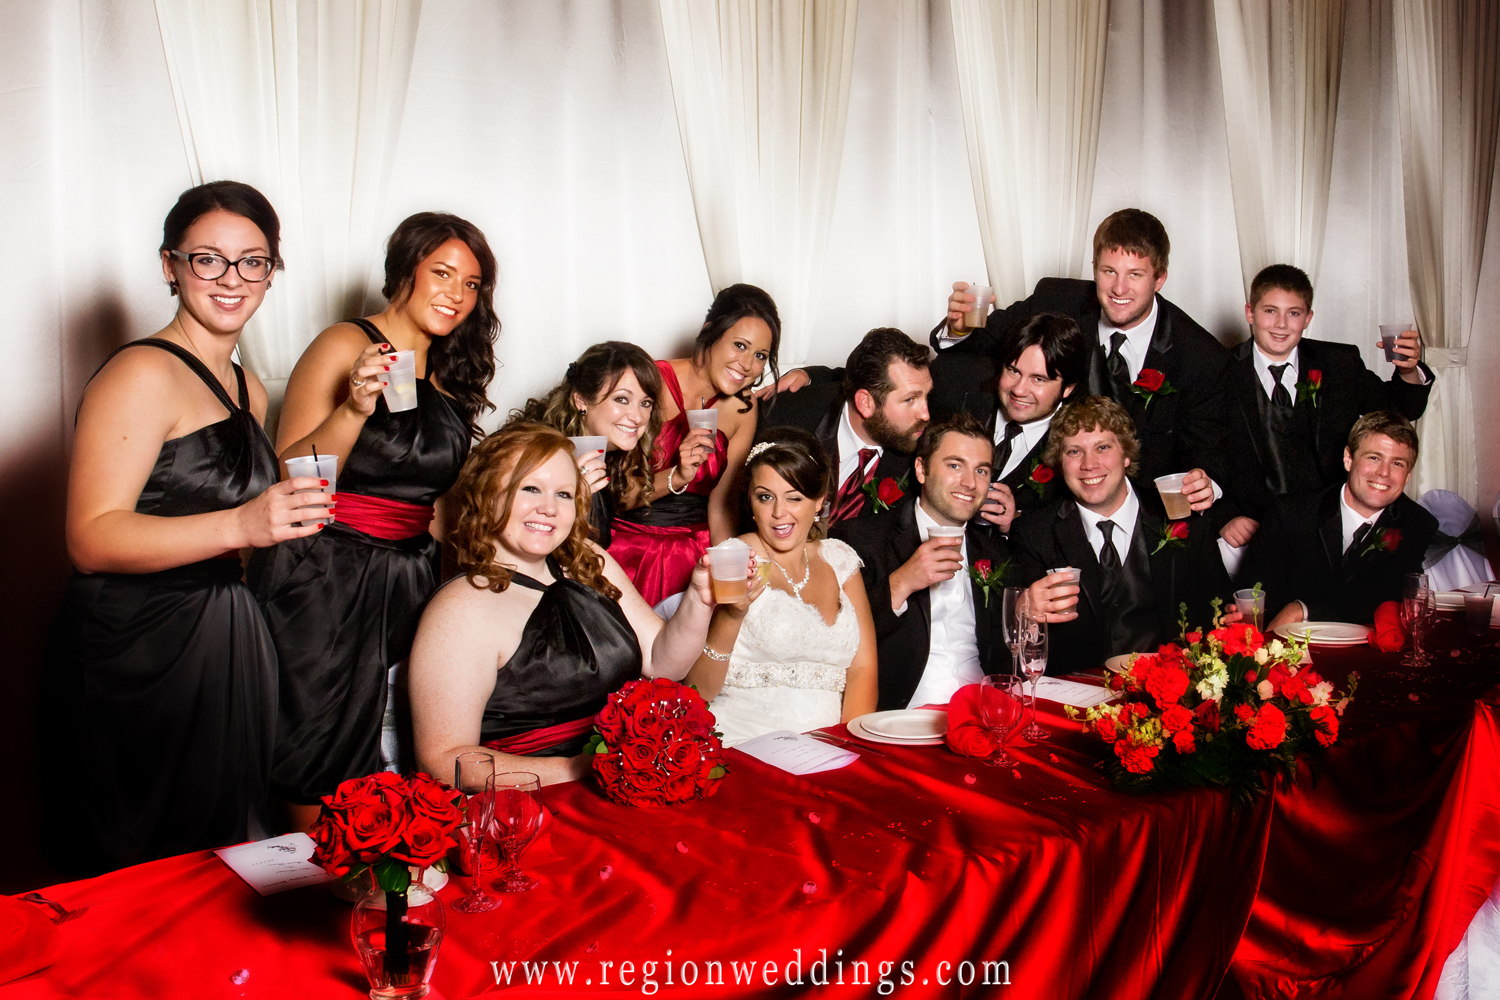 The wedding party hams in up in this fun wedding photo taken at The Halls of St. George in Schererville, Indiana.